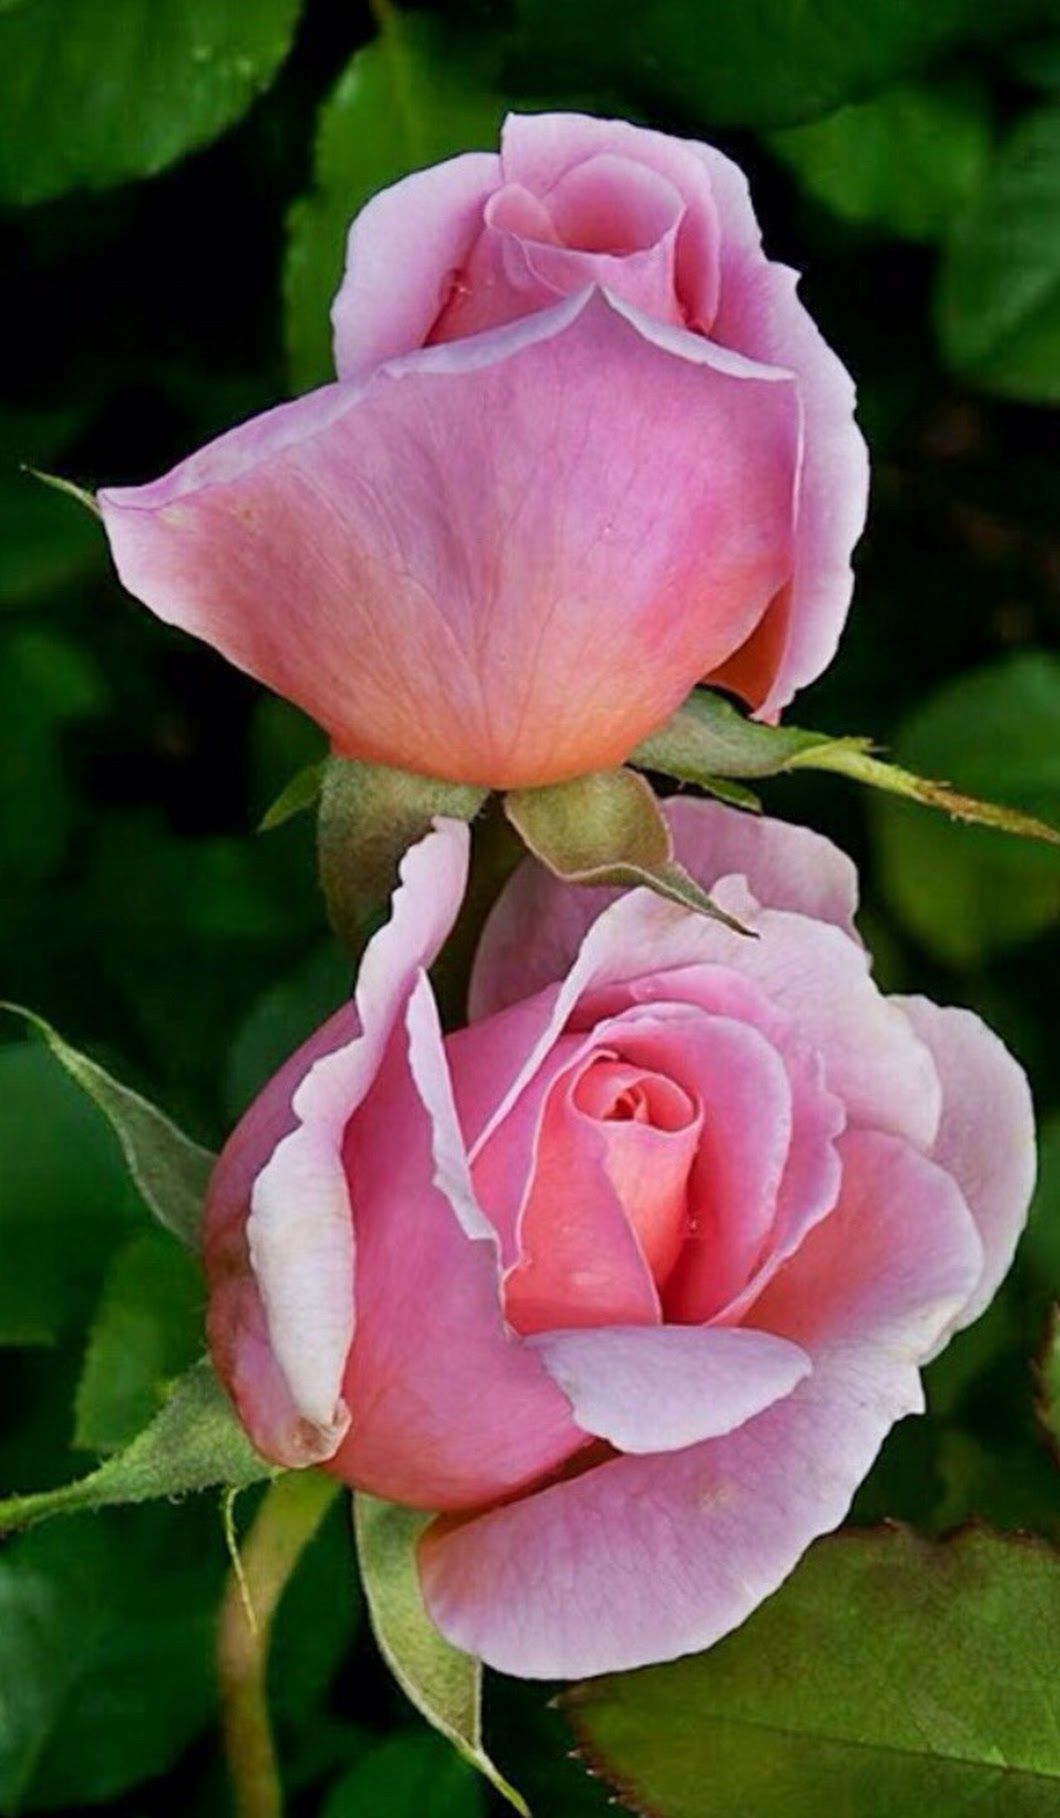 Pin By Haisun Hong On Pinterest Flowers Rose And Flower